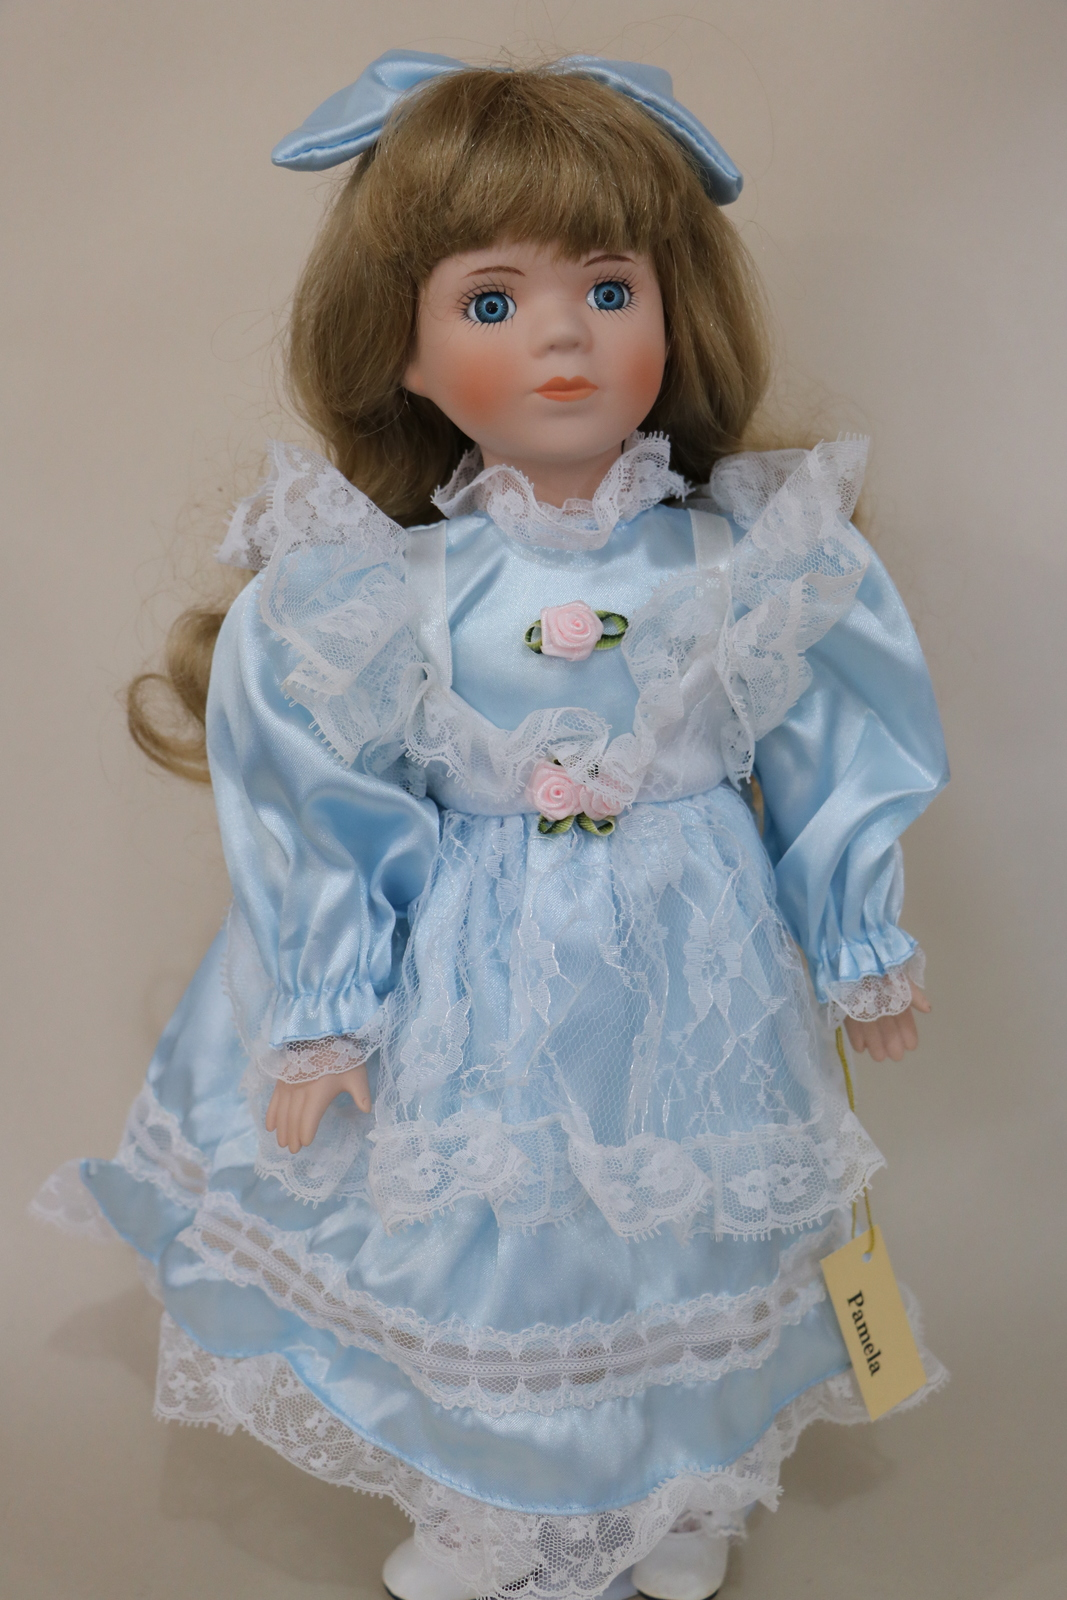 Porcelain Ceramic Doll with Long Blond hair and blue eyes wearing a Blue Dress